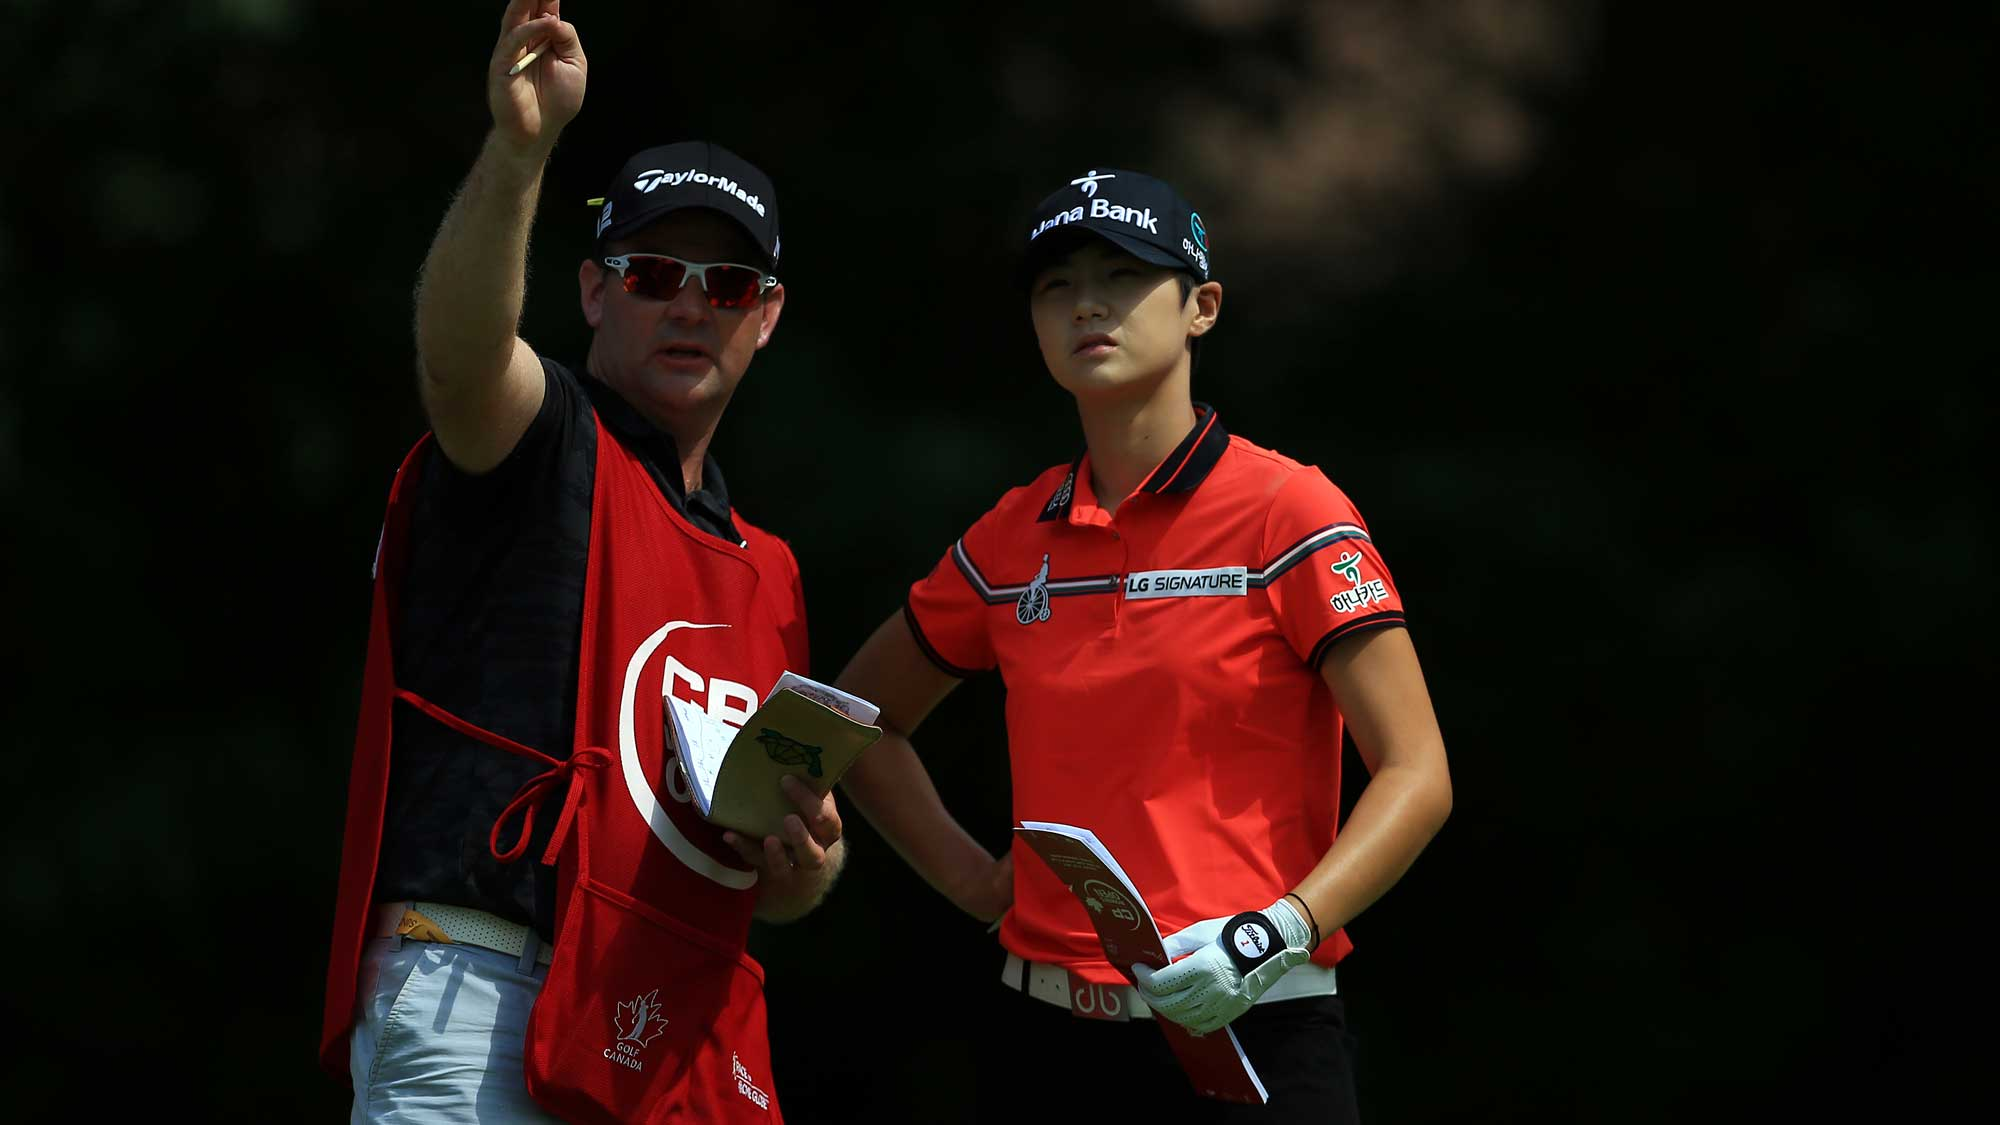 Sung Hyun Park of Korea prepares to hit her tee shot on the 4th hole during the final round of the Canadian Pacific Women's Open